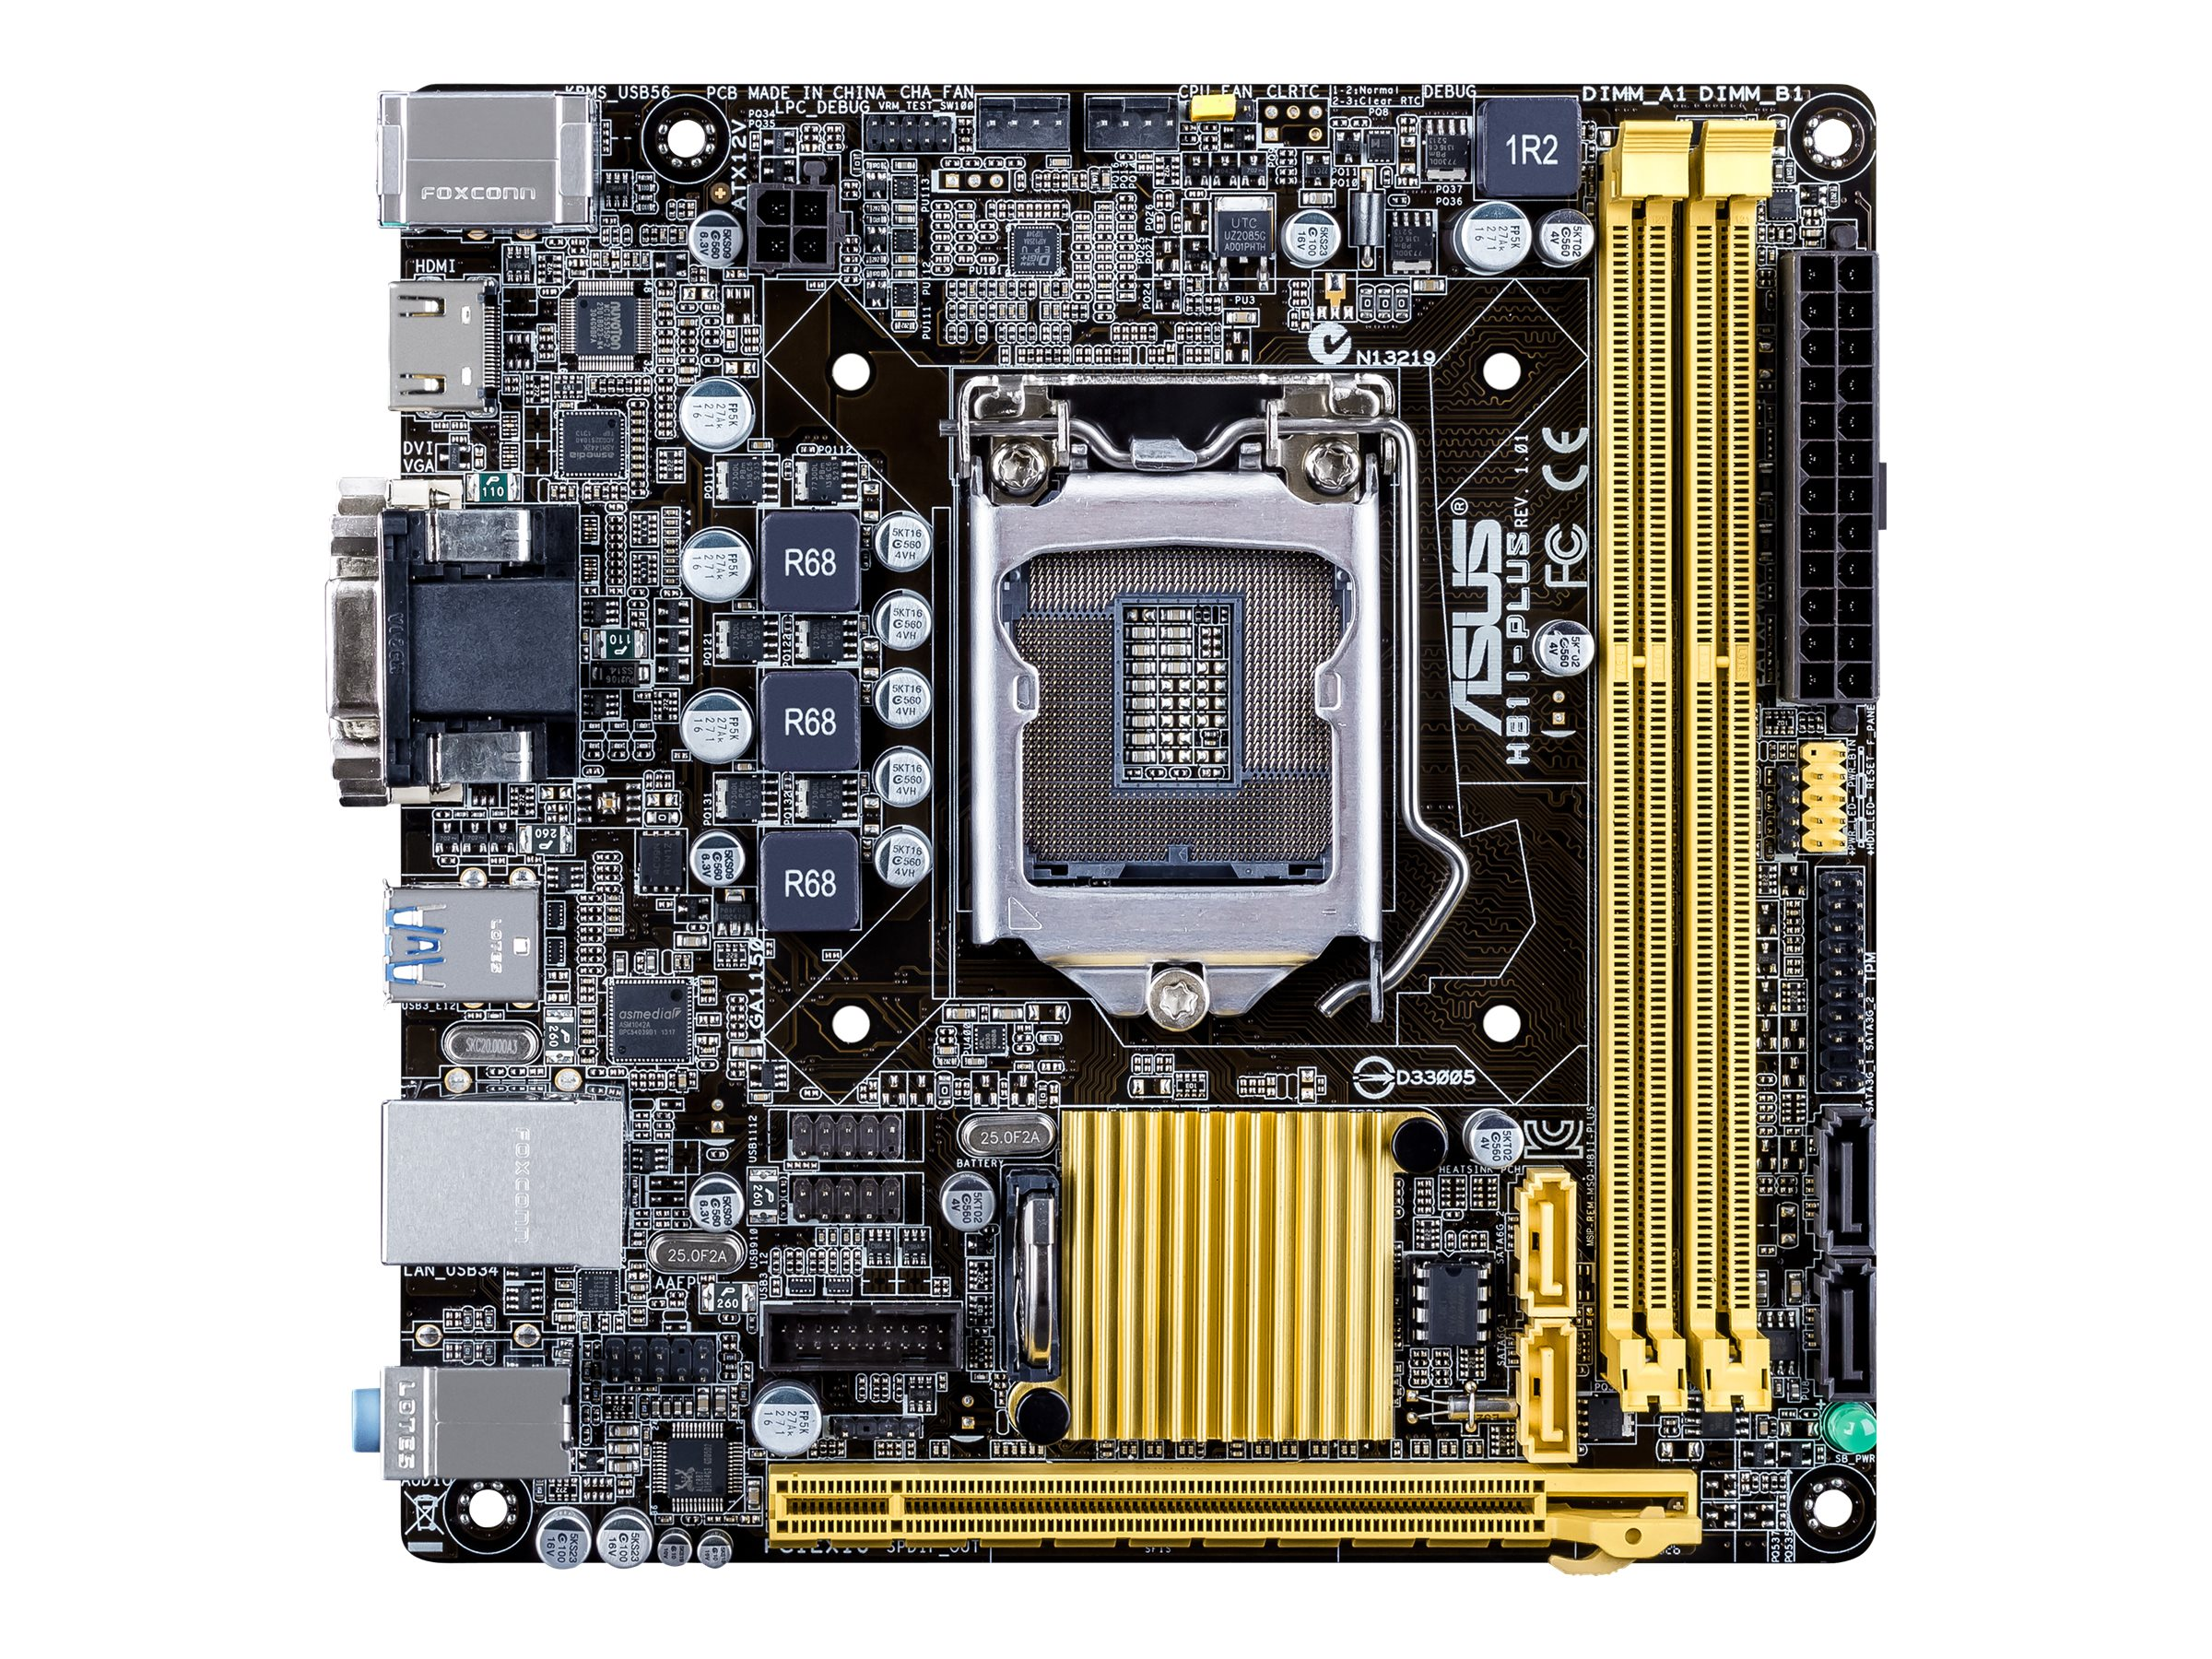 Asus H81I-PLUS Motherboard, Mini-ITX Core i Max. 16GB 4xSATA PCIe 2.0 x16 GigLAN, H81I-PLUS